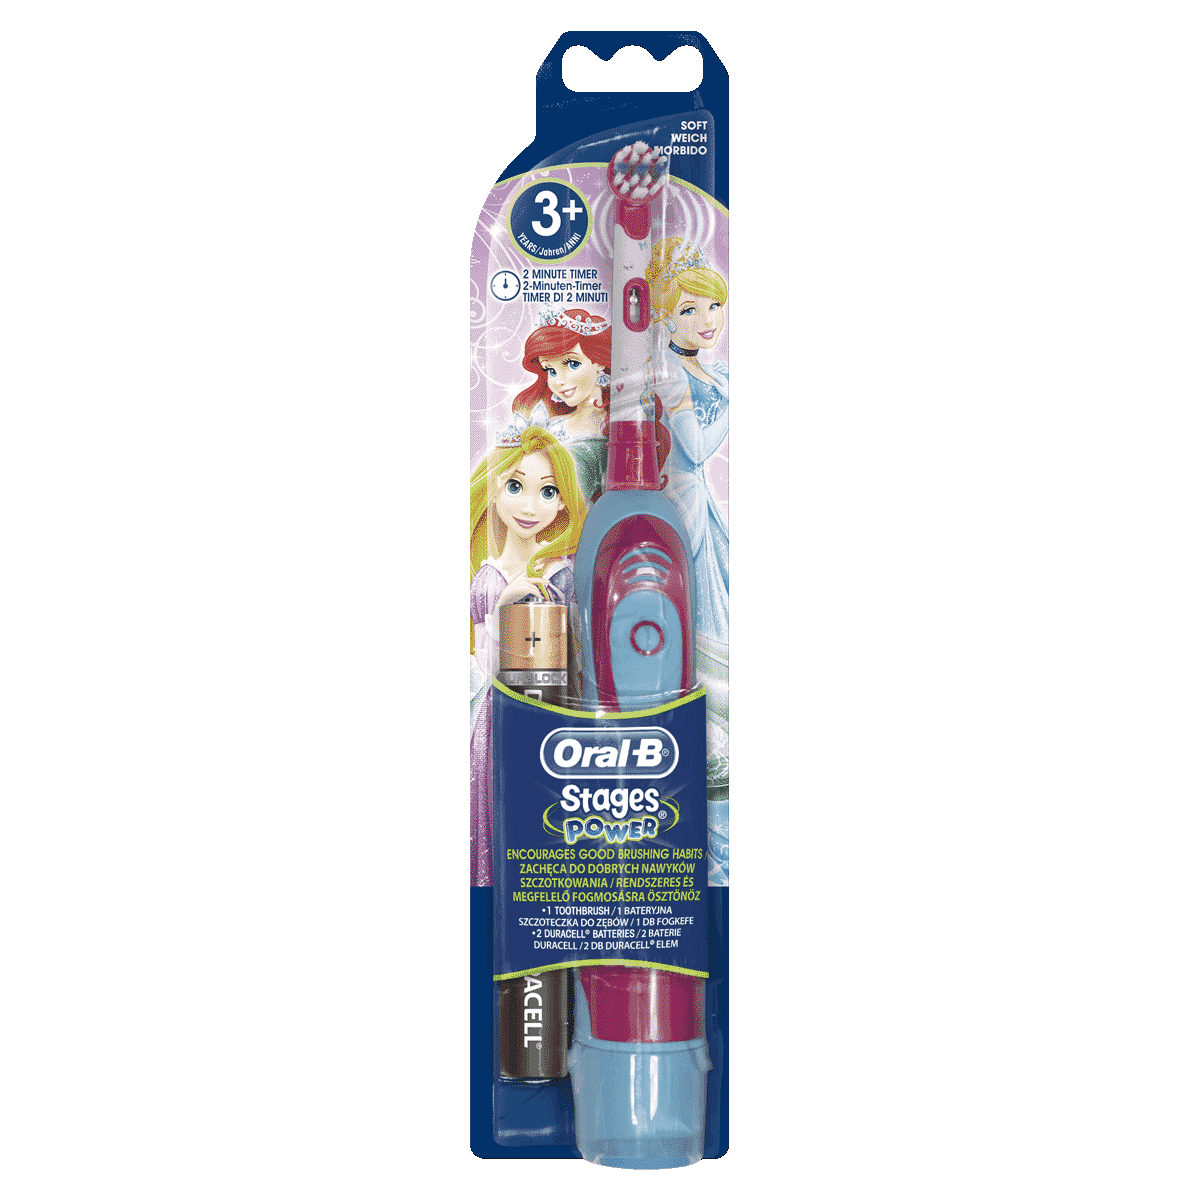 Oral-B Stages Power Kids Battery Toothbrush featuring Disney Princesses